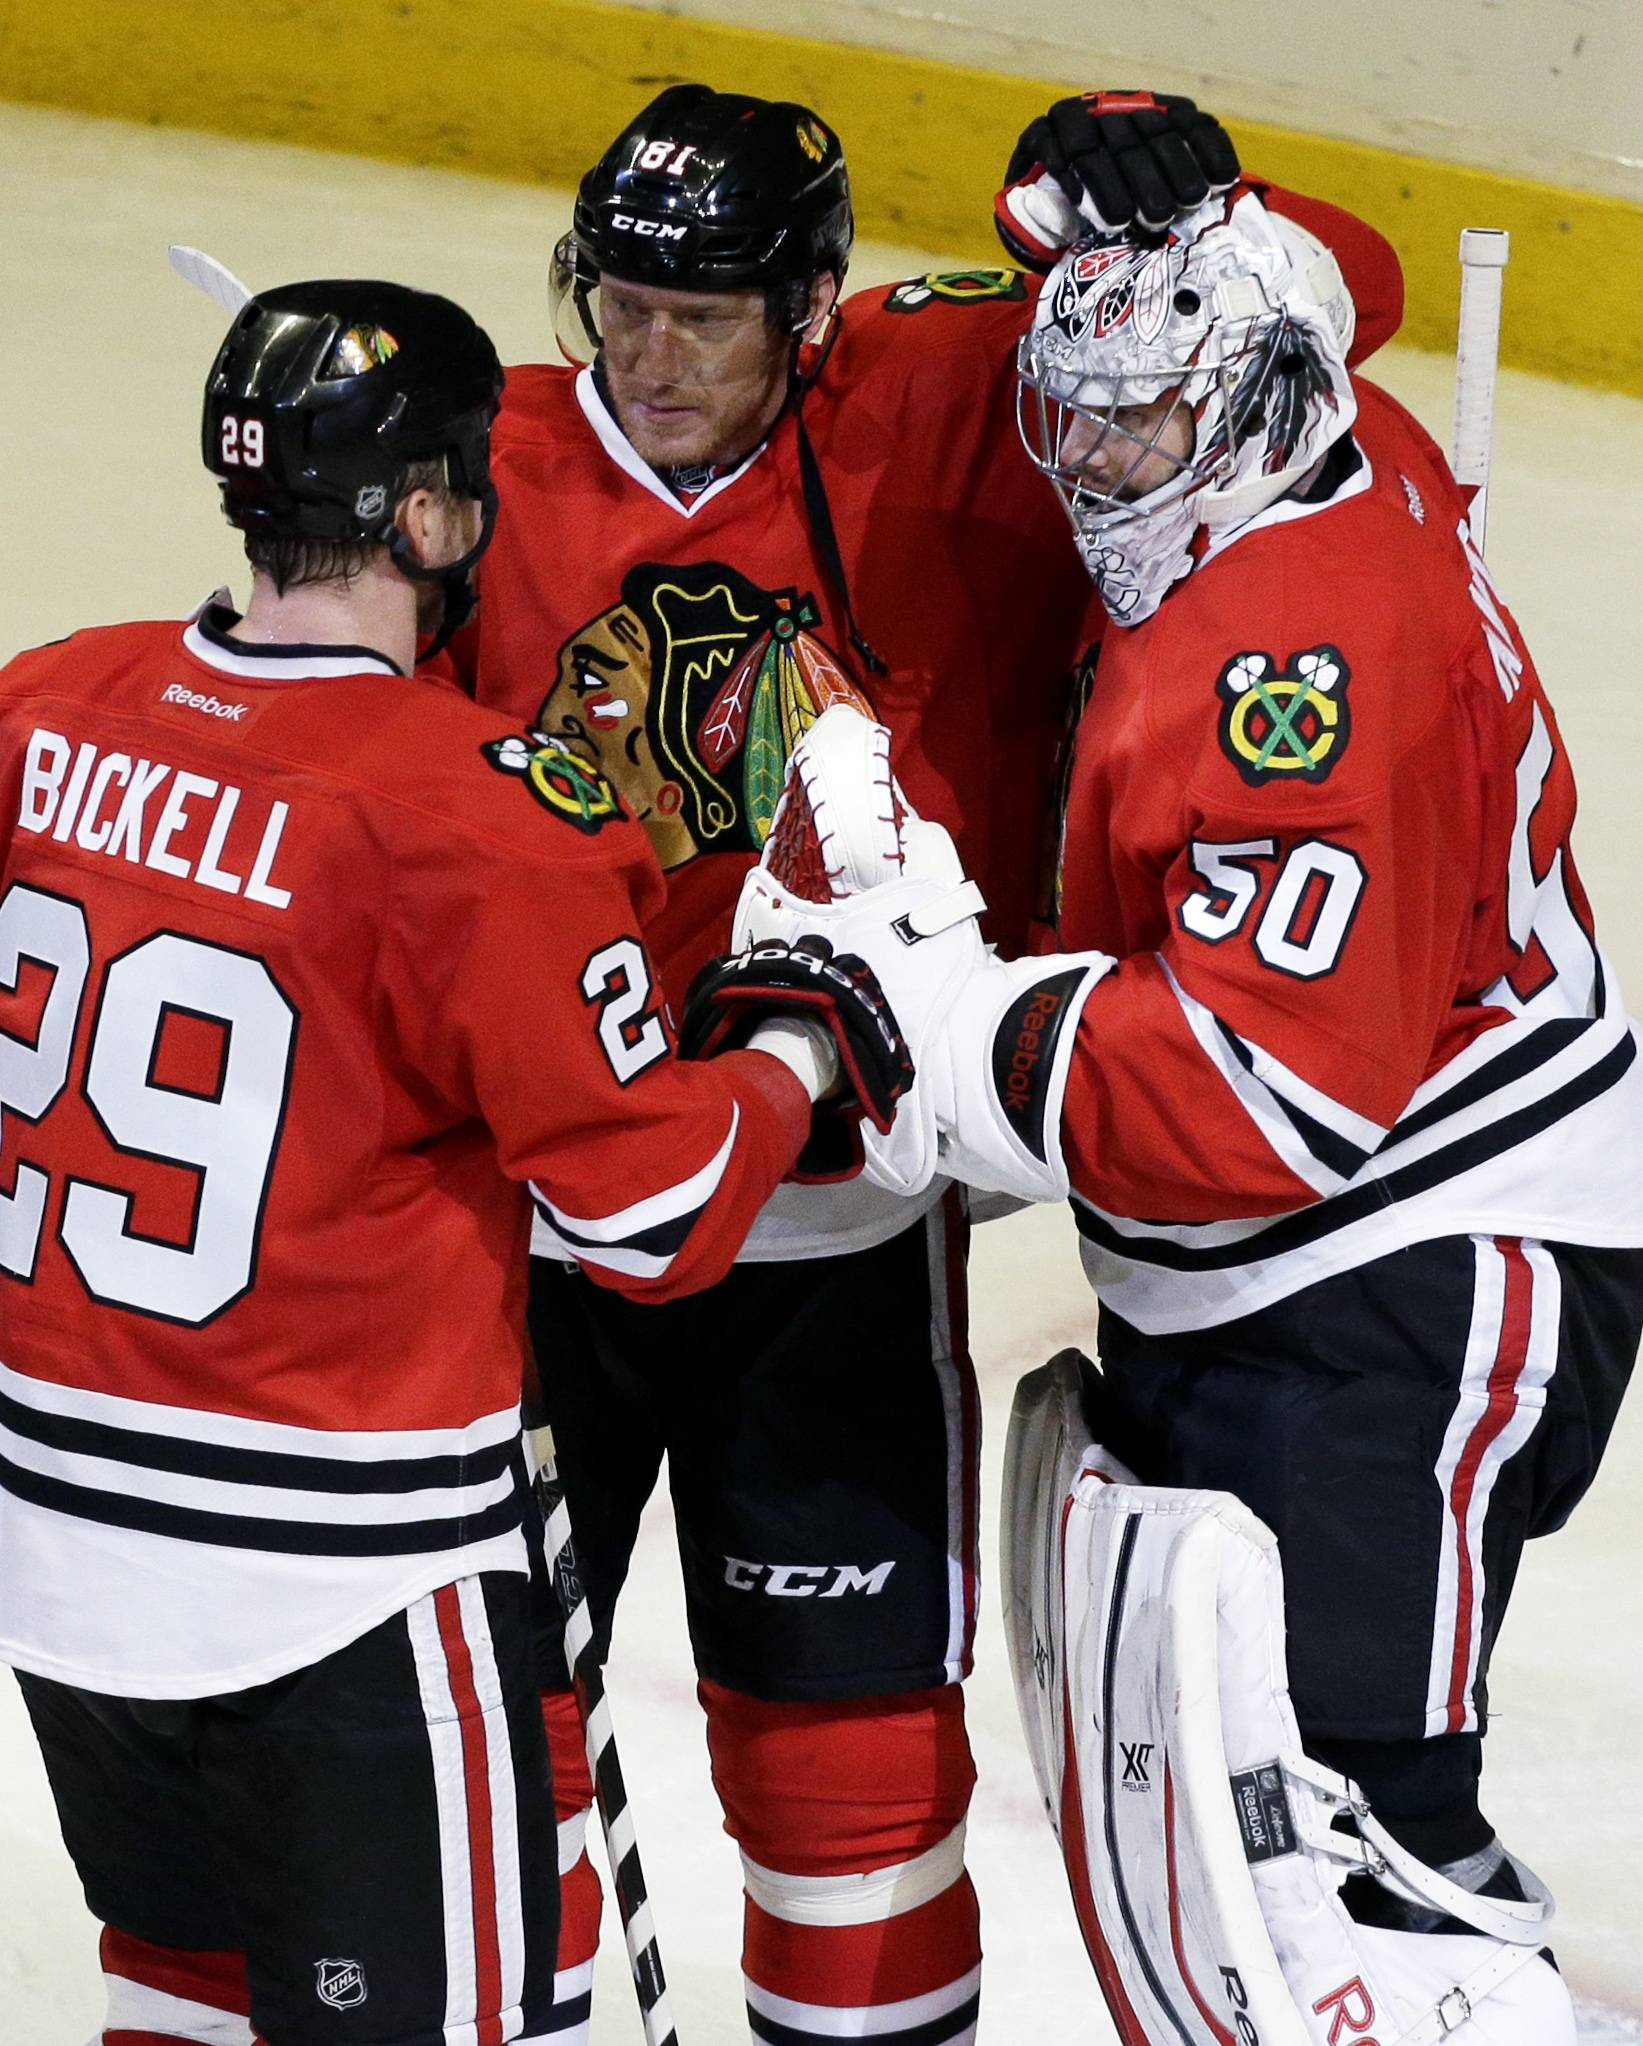 Chicago Blackhawks goalie Corey Crawford (50) celebrates with teammates Marian Hossa (81) and Bryan Bickell (29) after they defeated the St. Louis Blues 5-1 in Game 6.